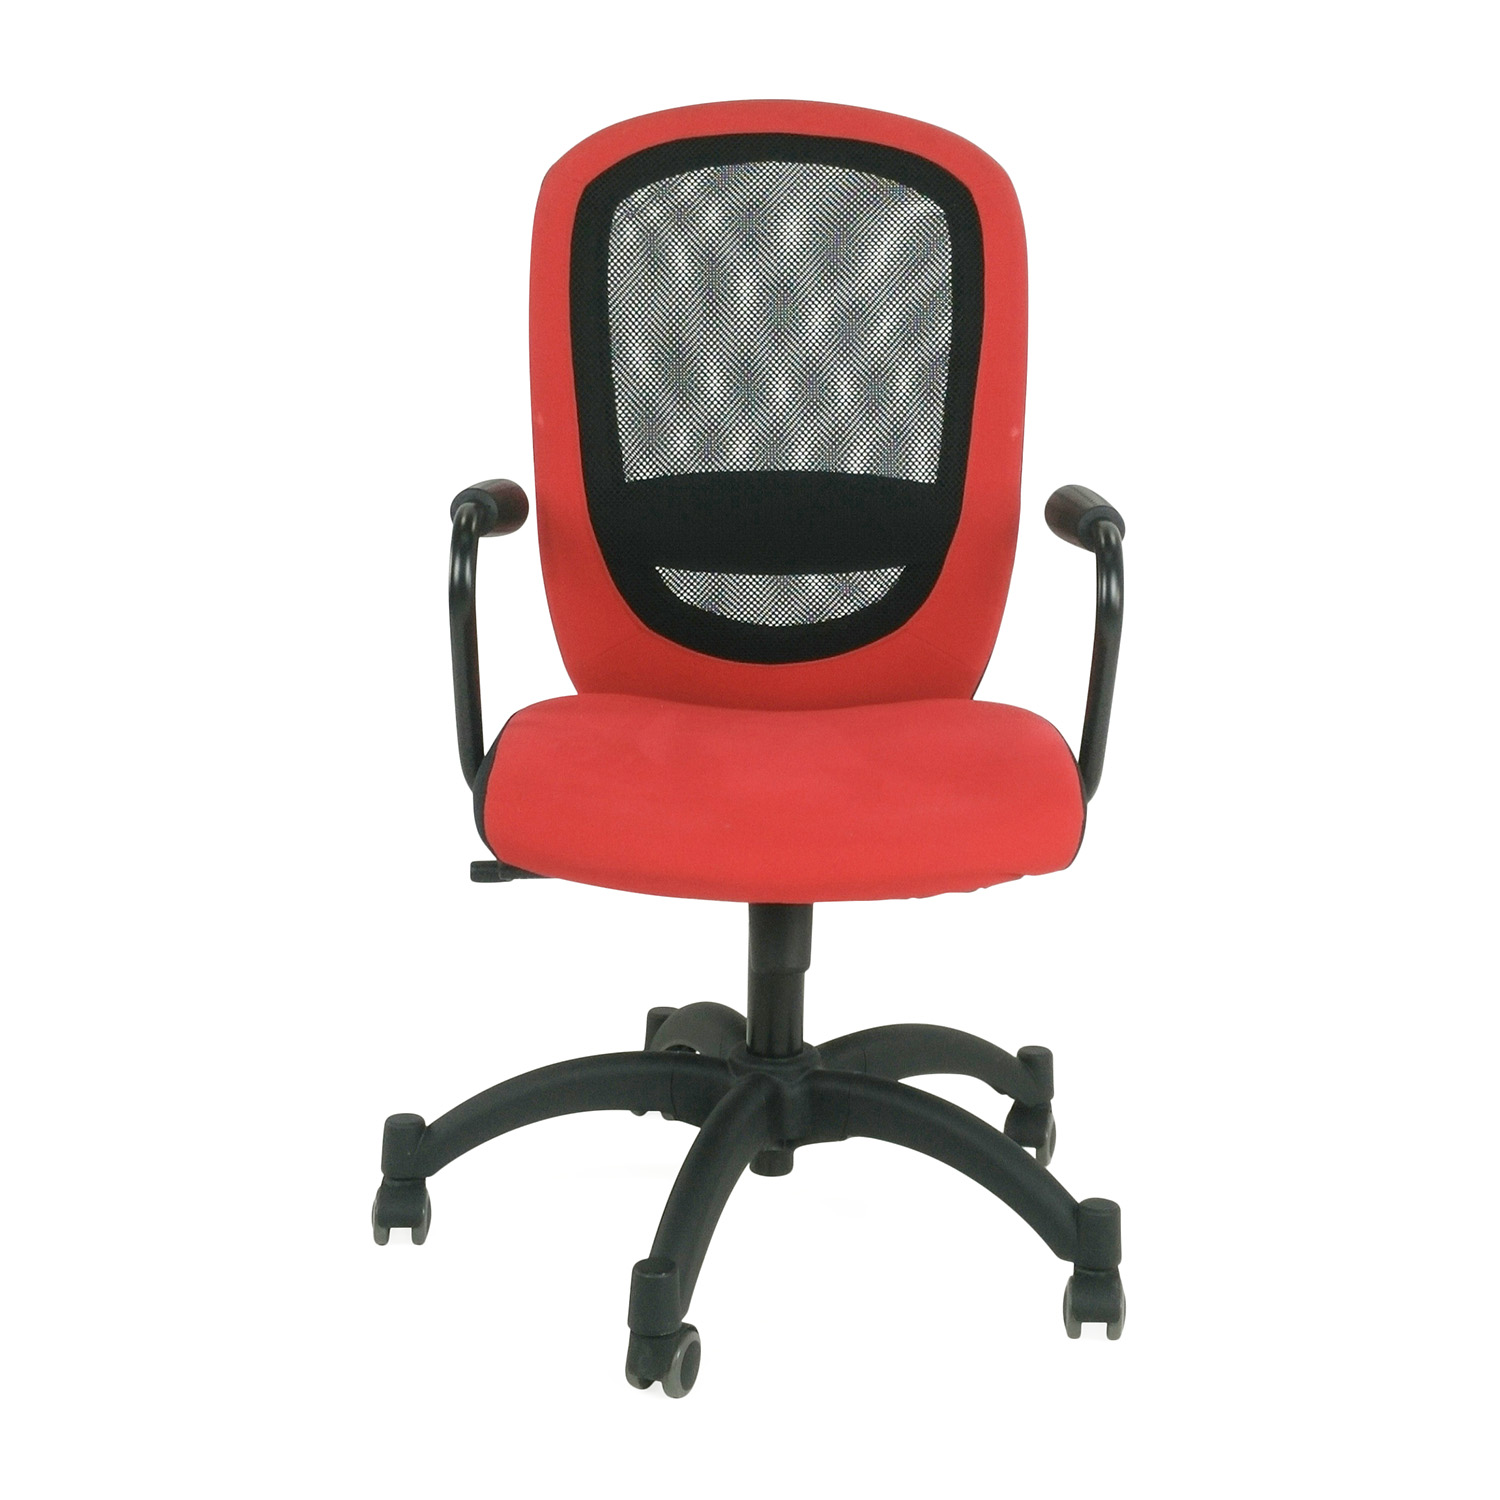 IKEA Red Office Chair Red / Black